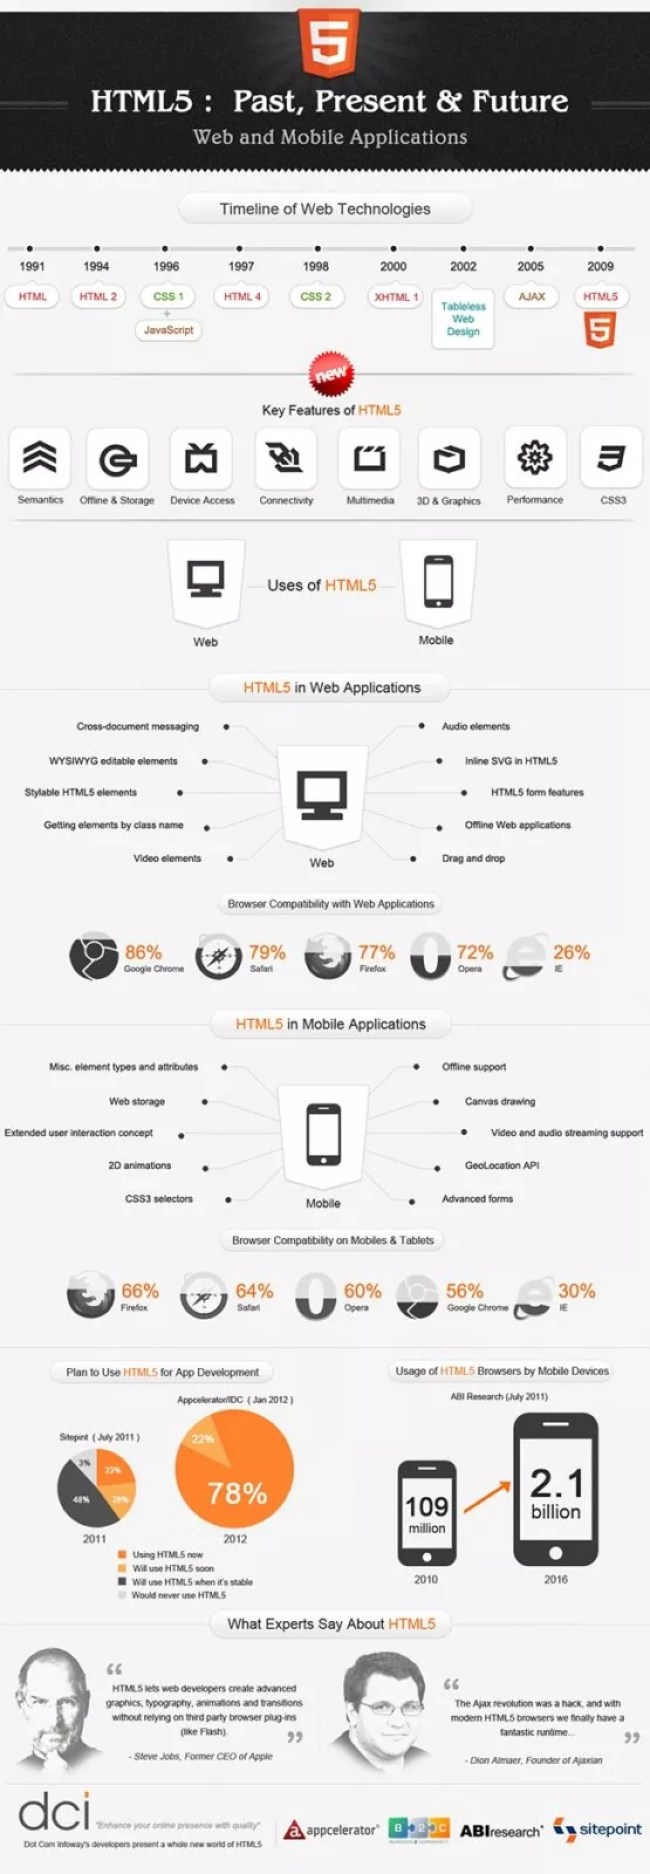 html5 infographics1 - Infographic: HTML5 Past, Present & Future